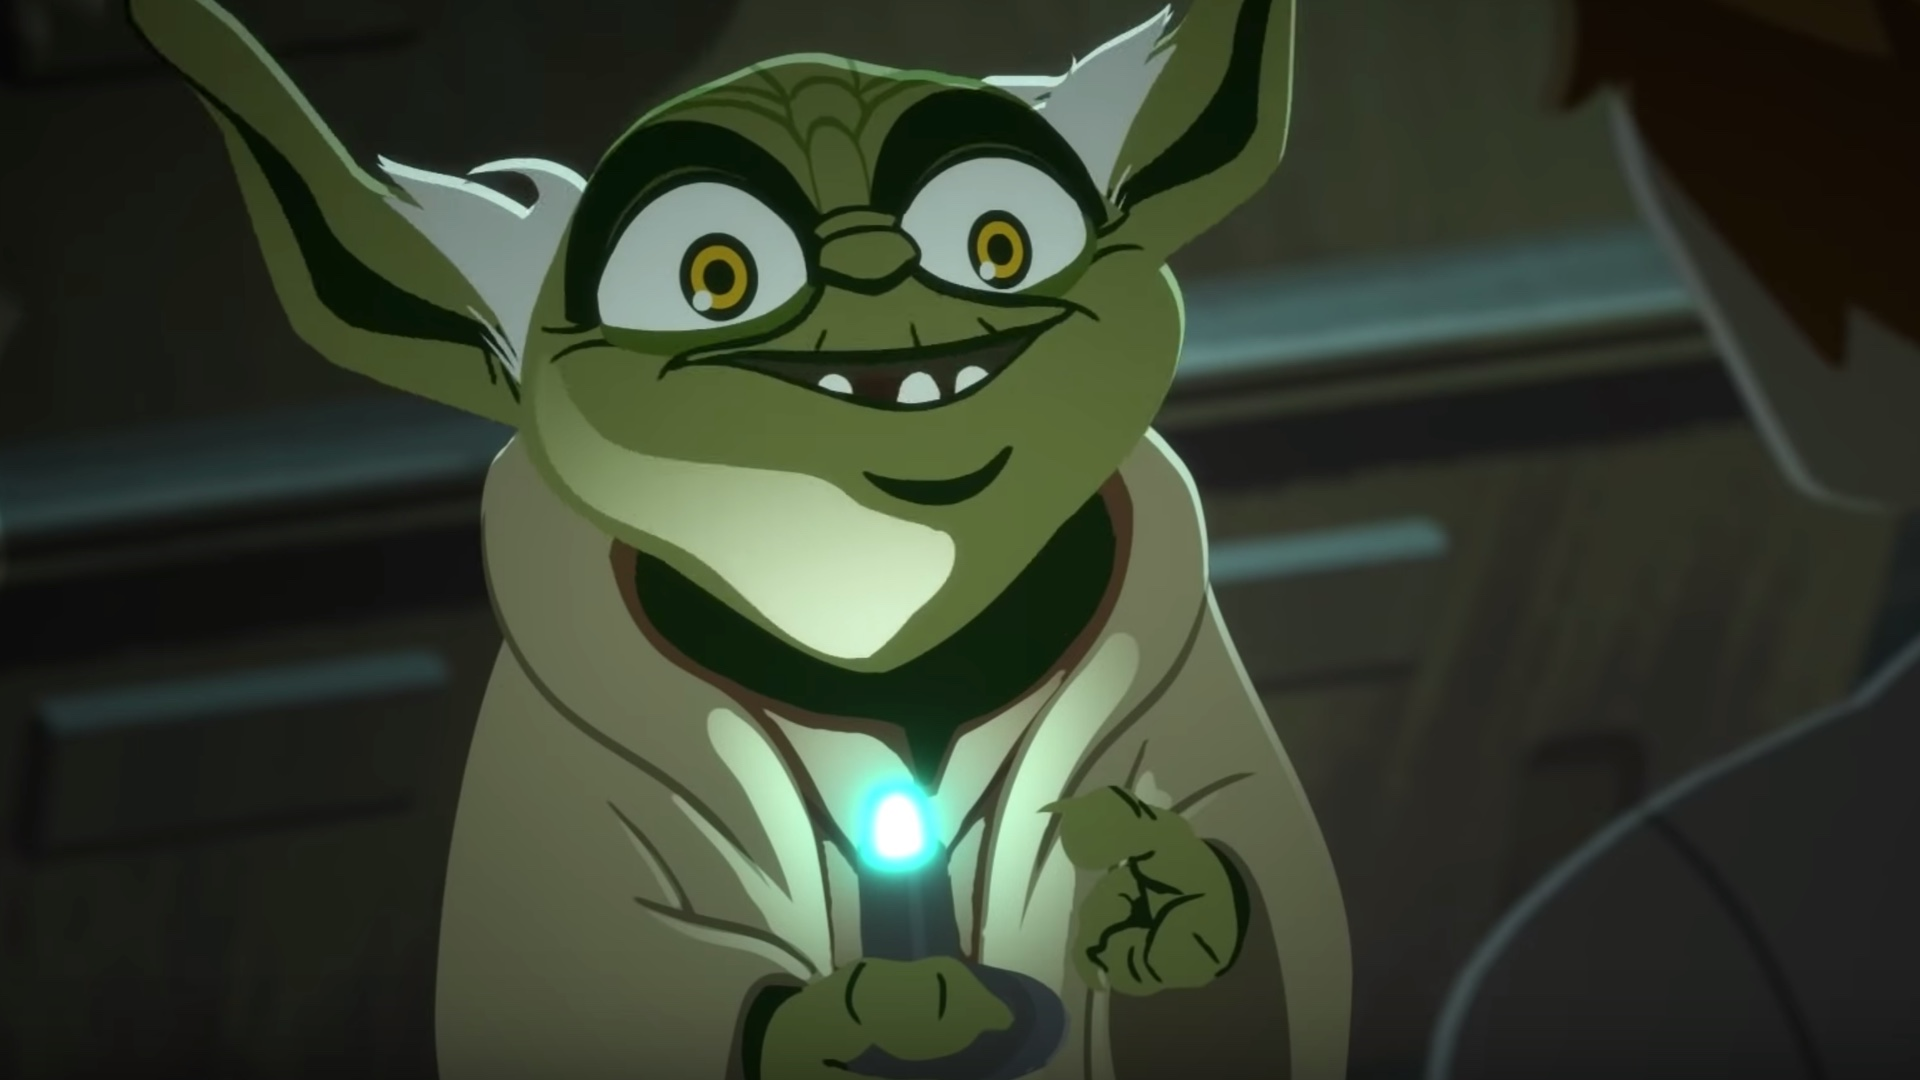 yoda-is-up-to-his-old-tricks-in-this-fun-new-star-wars-galaxy-of-adventures-short-social.jpg